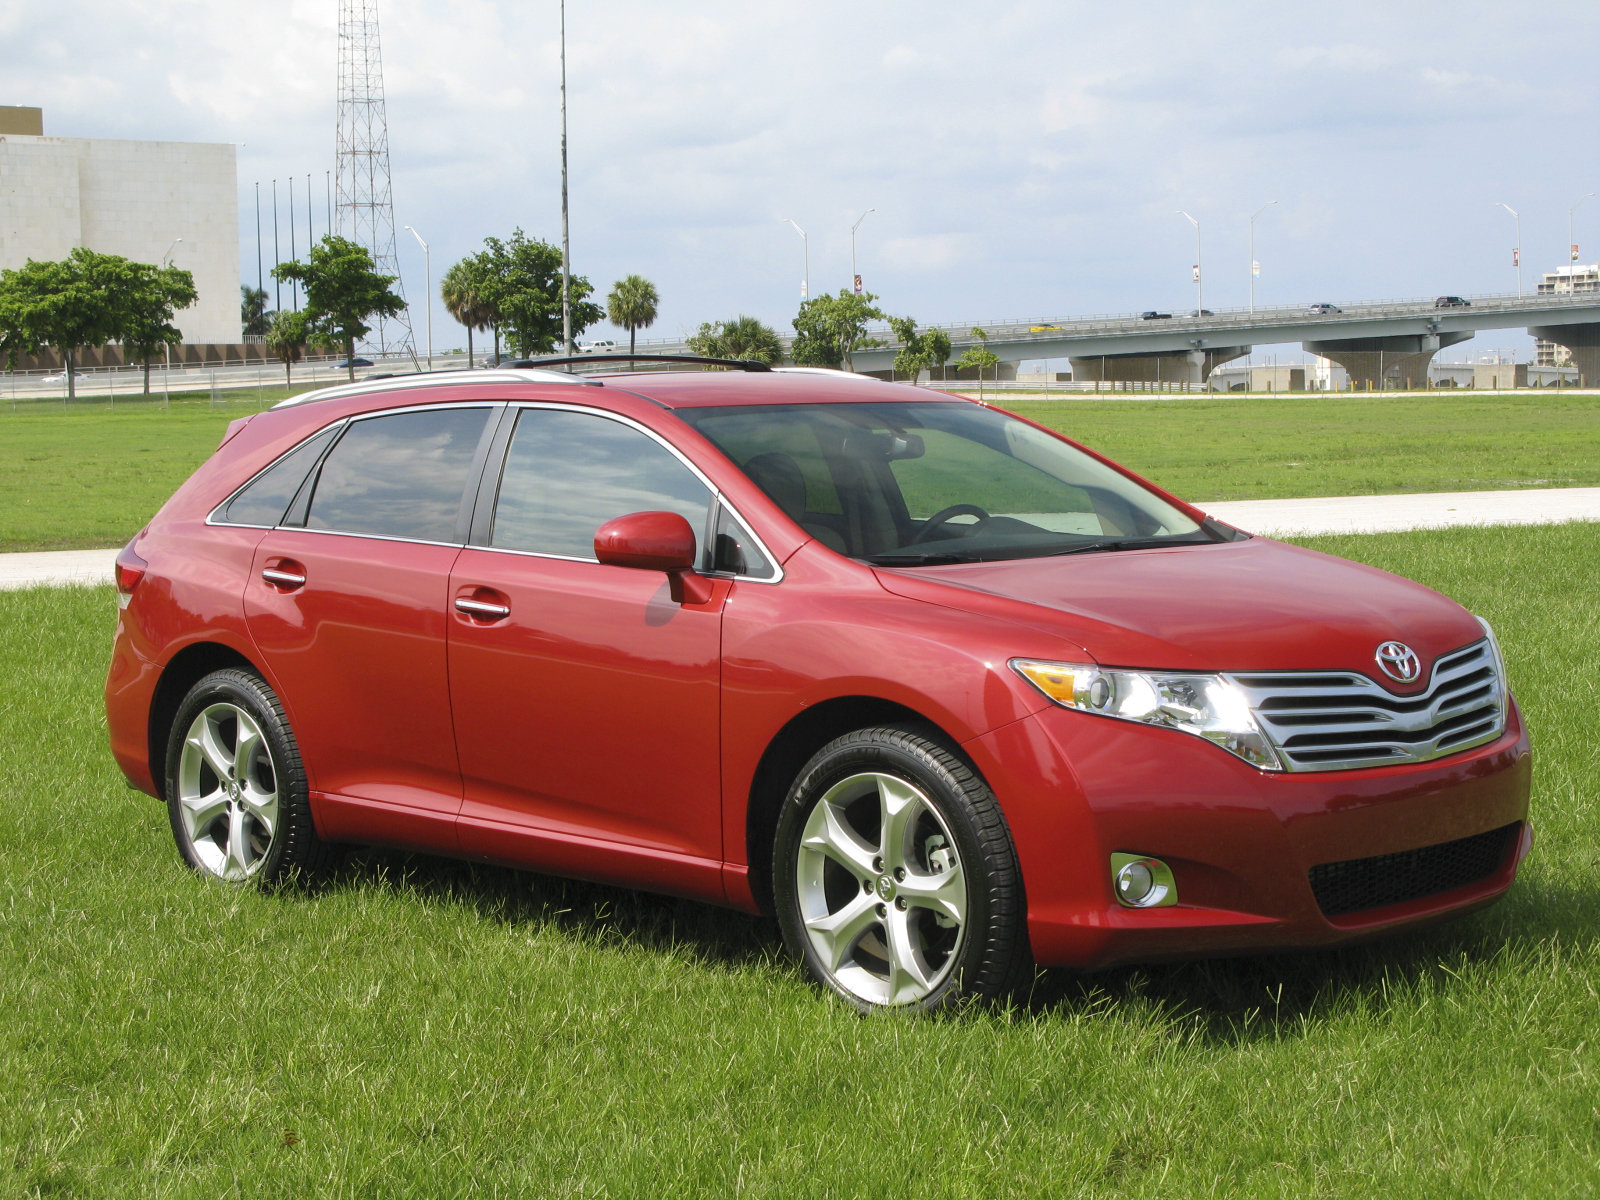 2009 toyota venza picture 309774 car review top speed. Black Bedroom Furniture Sets. Home Design Ideas